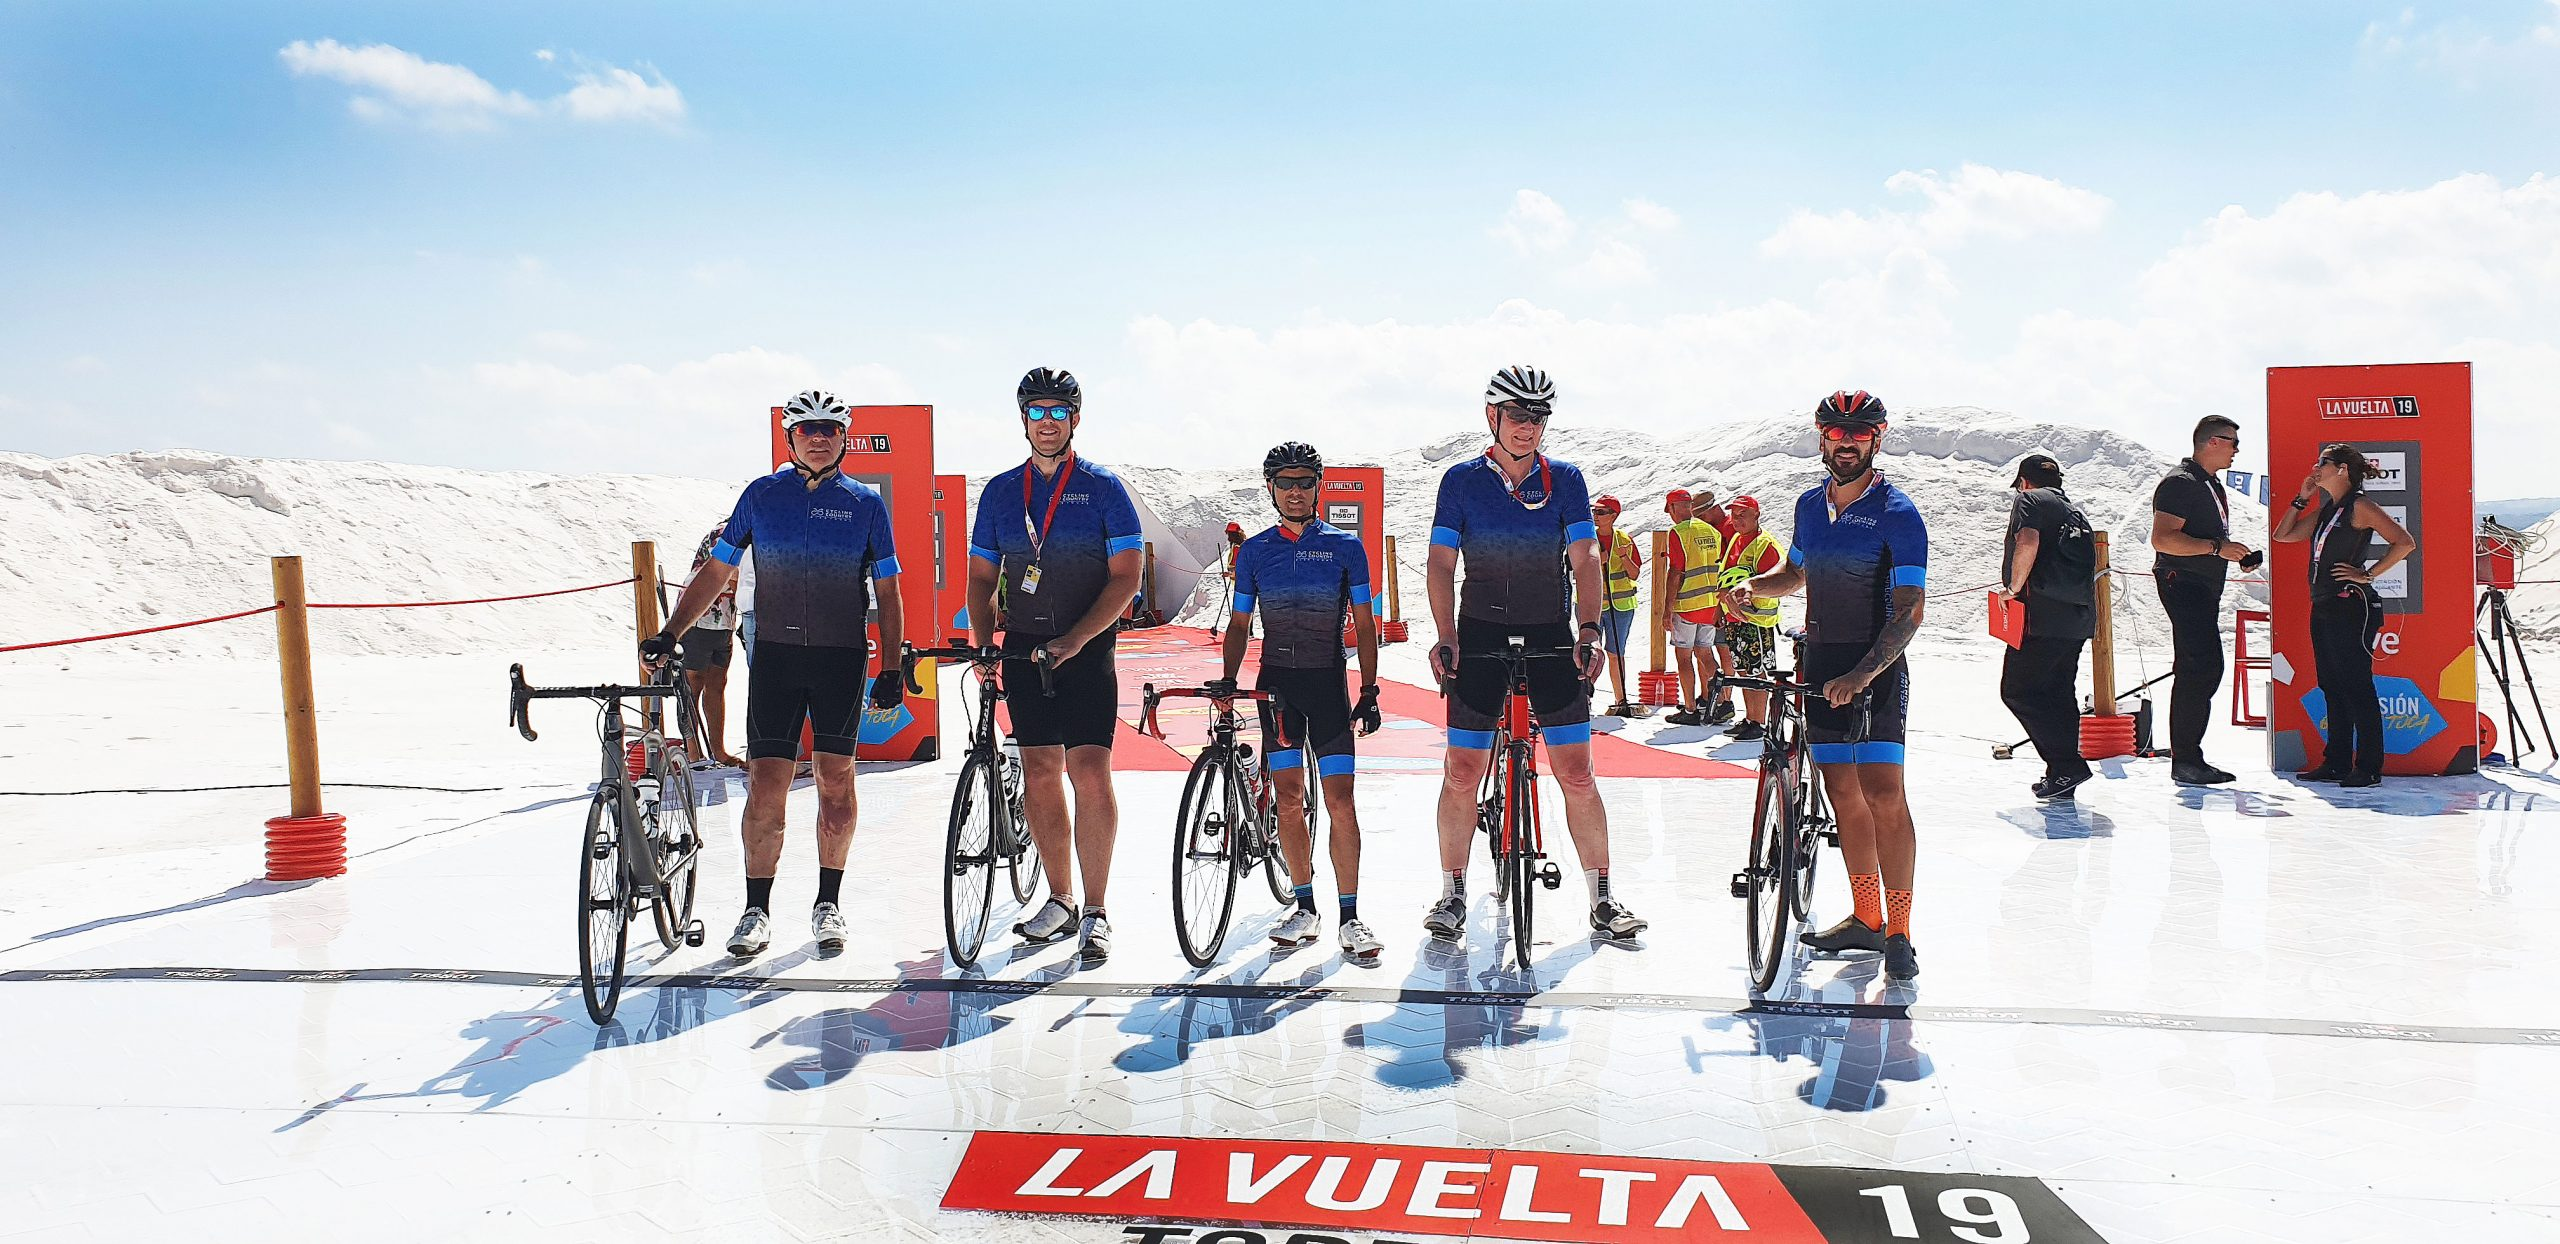 Ride the Vuelta Time Trial